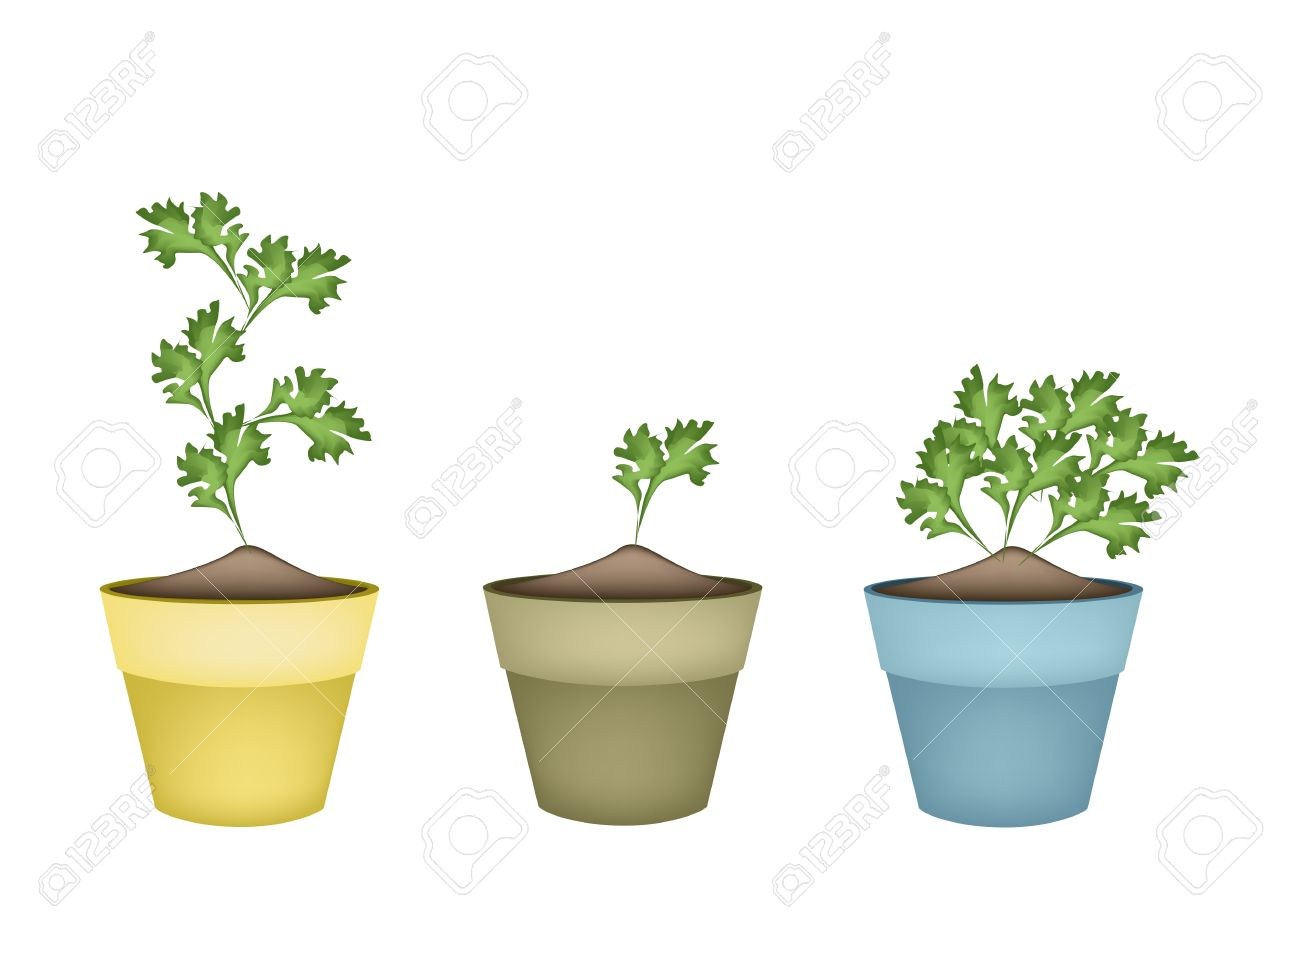 Vegetable And Herb, Illustration Of Fresh Parsley, Chinese Parsley.